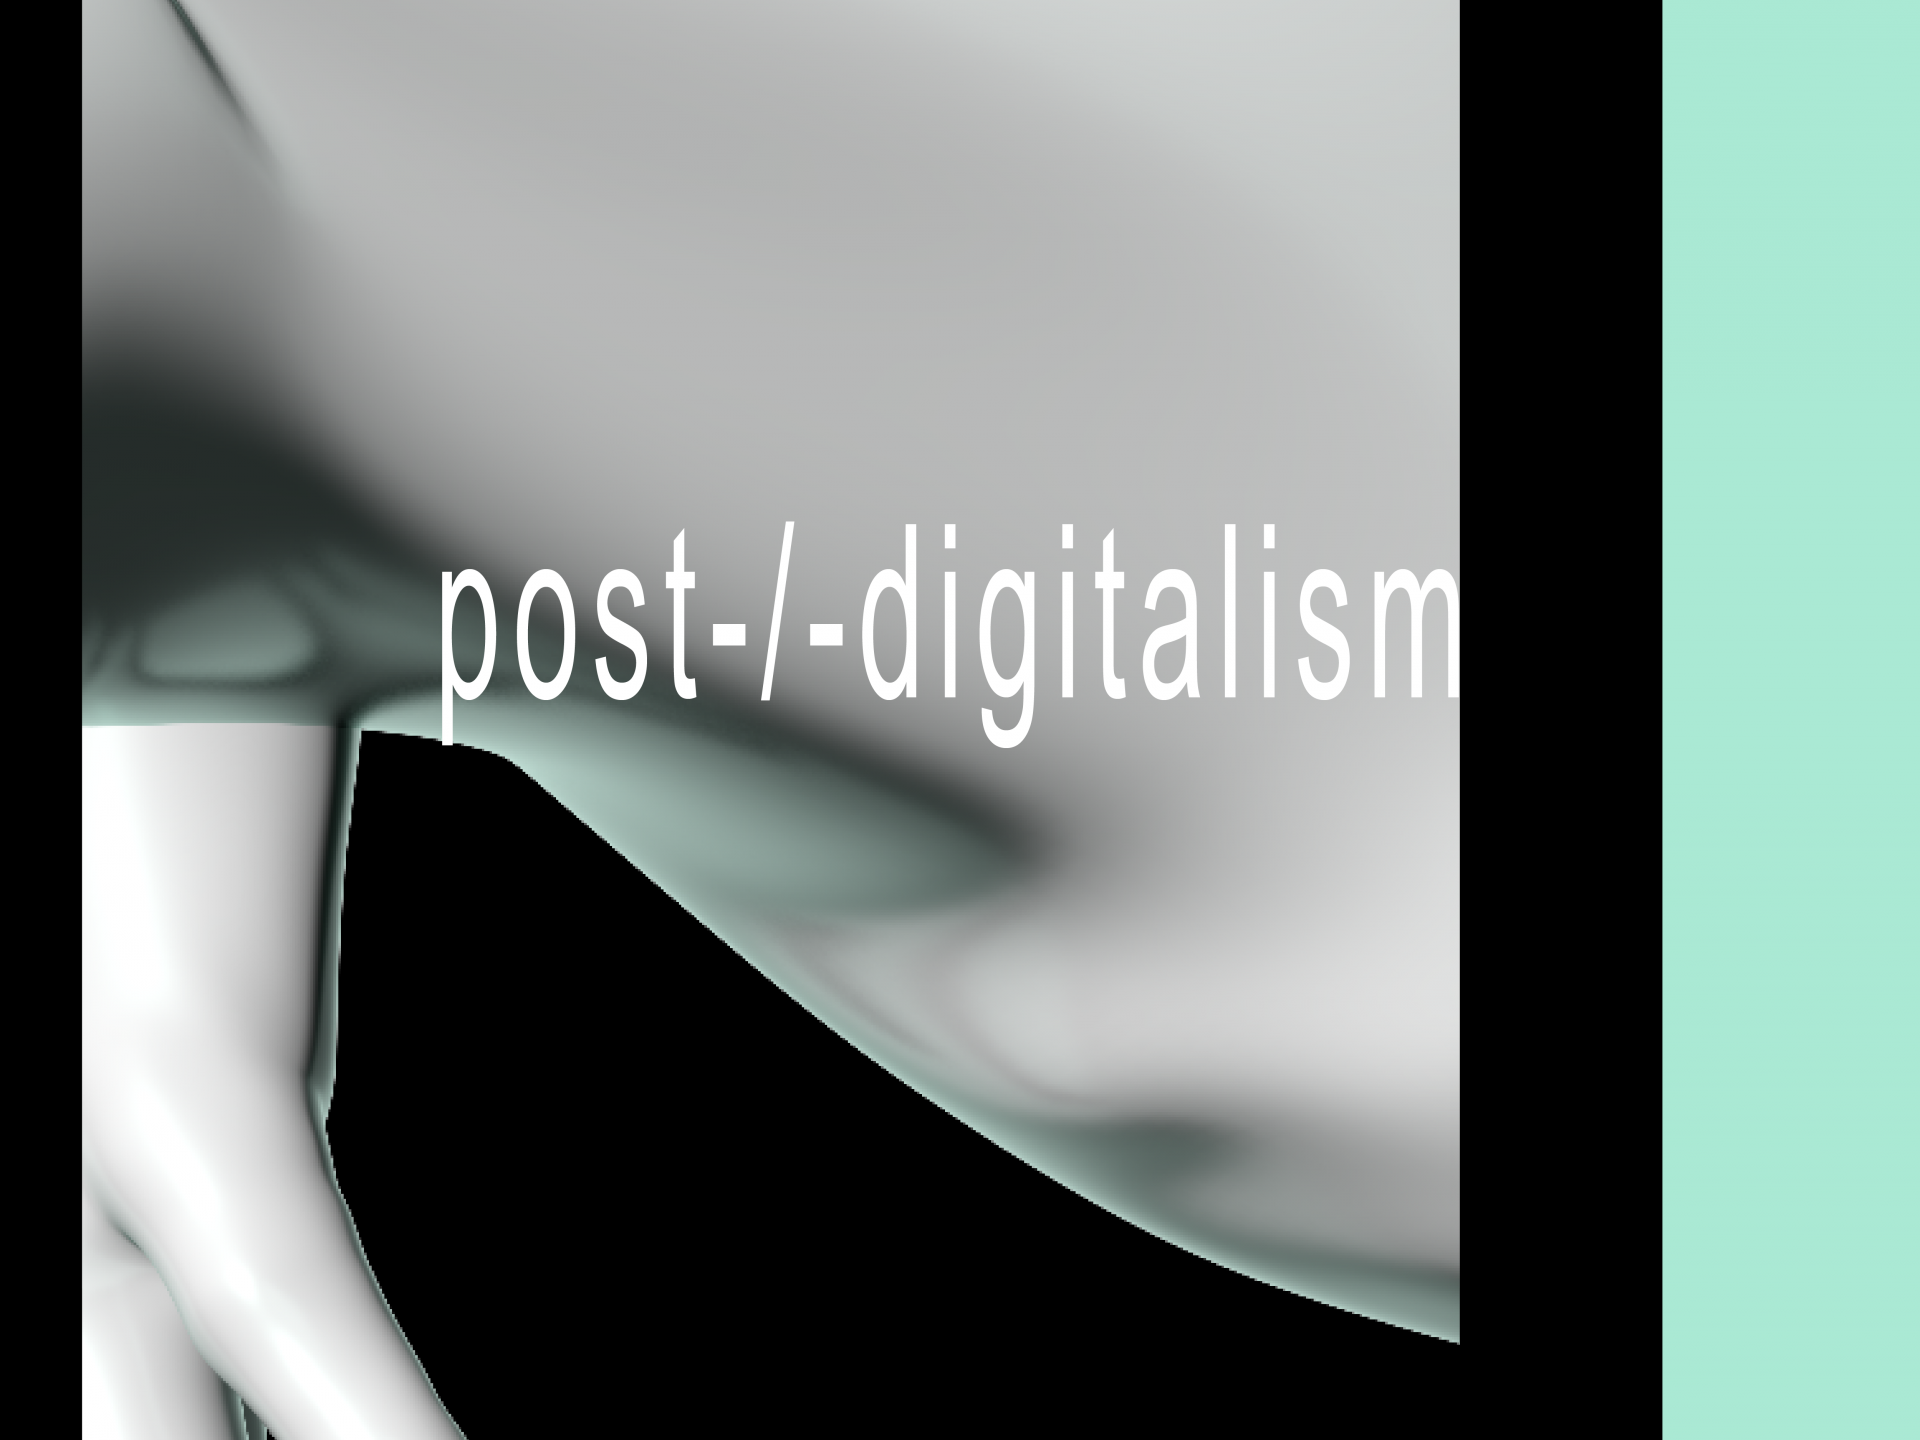 die digitale post-/-digitalism